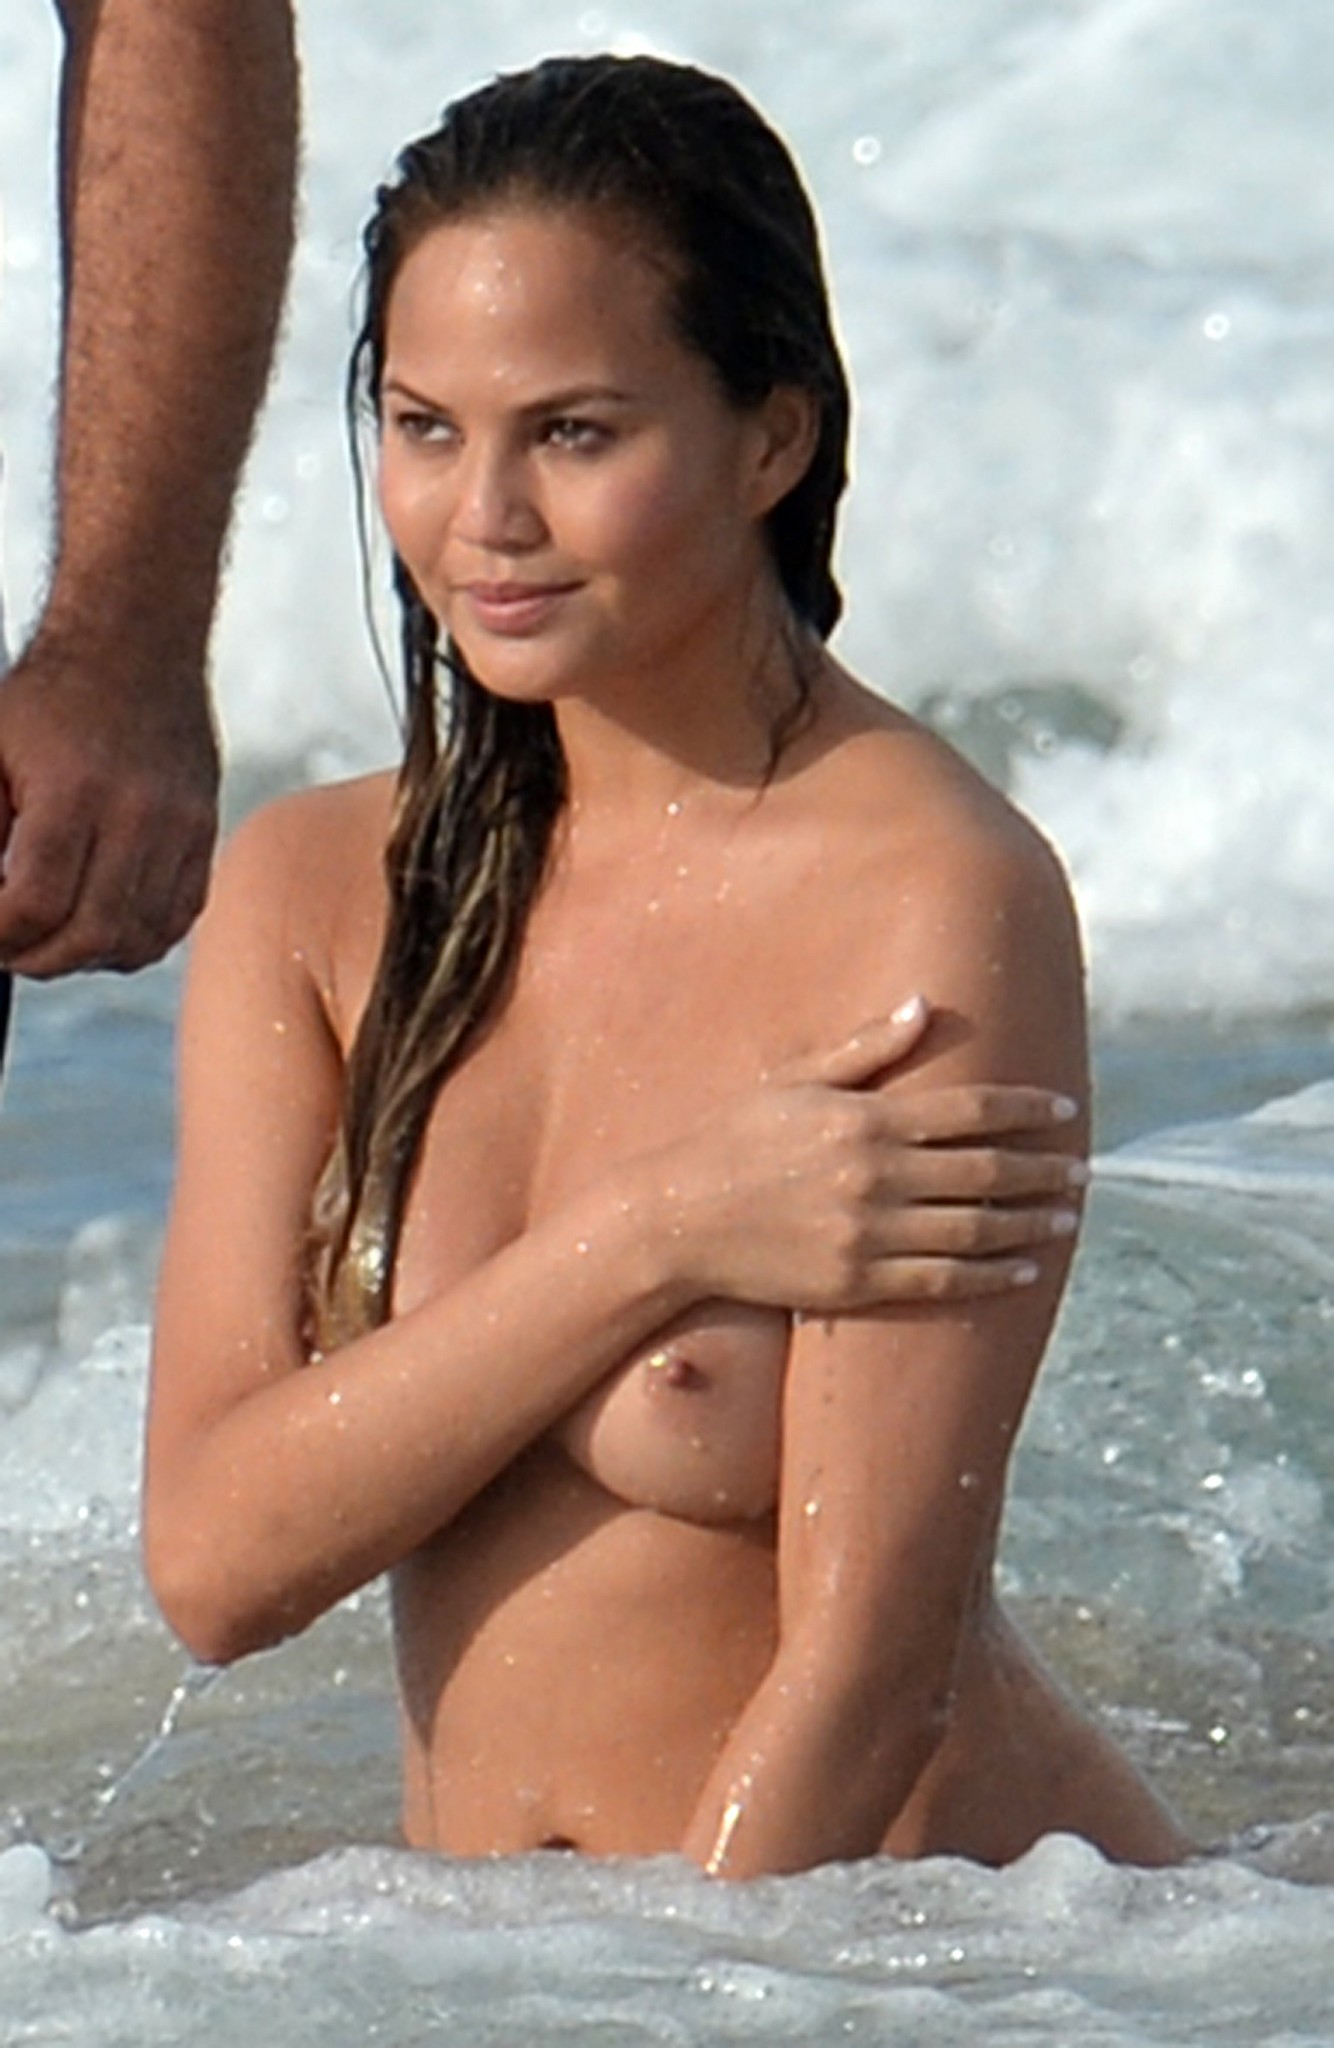 chrissy-teigen-topless-photoshoot-at-miami-beach-24